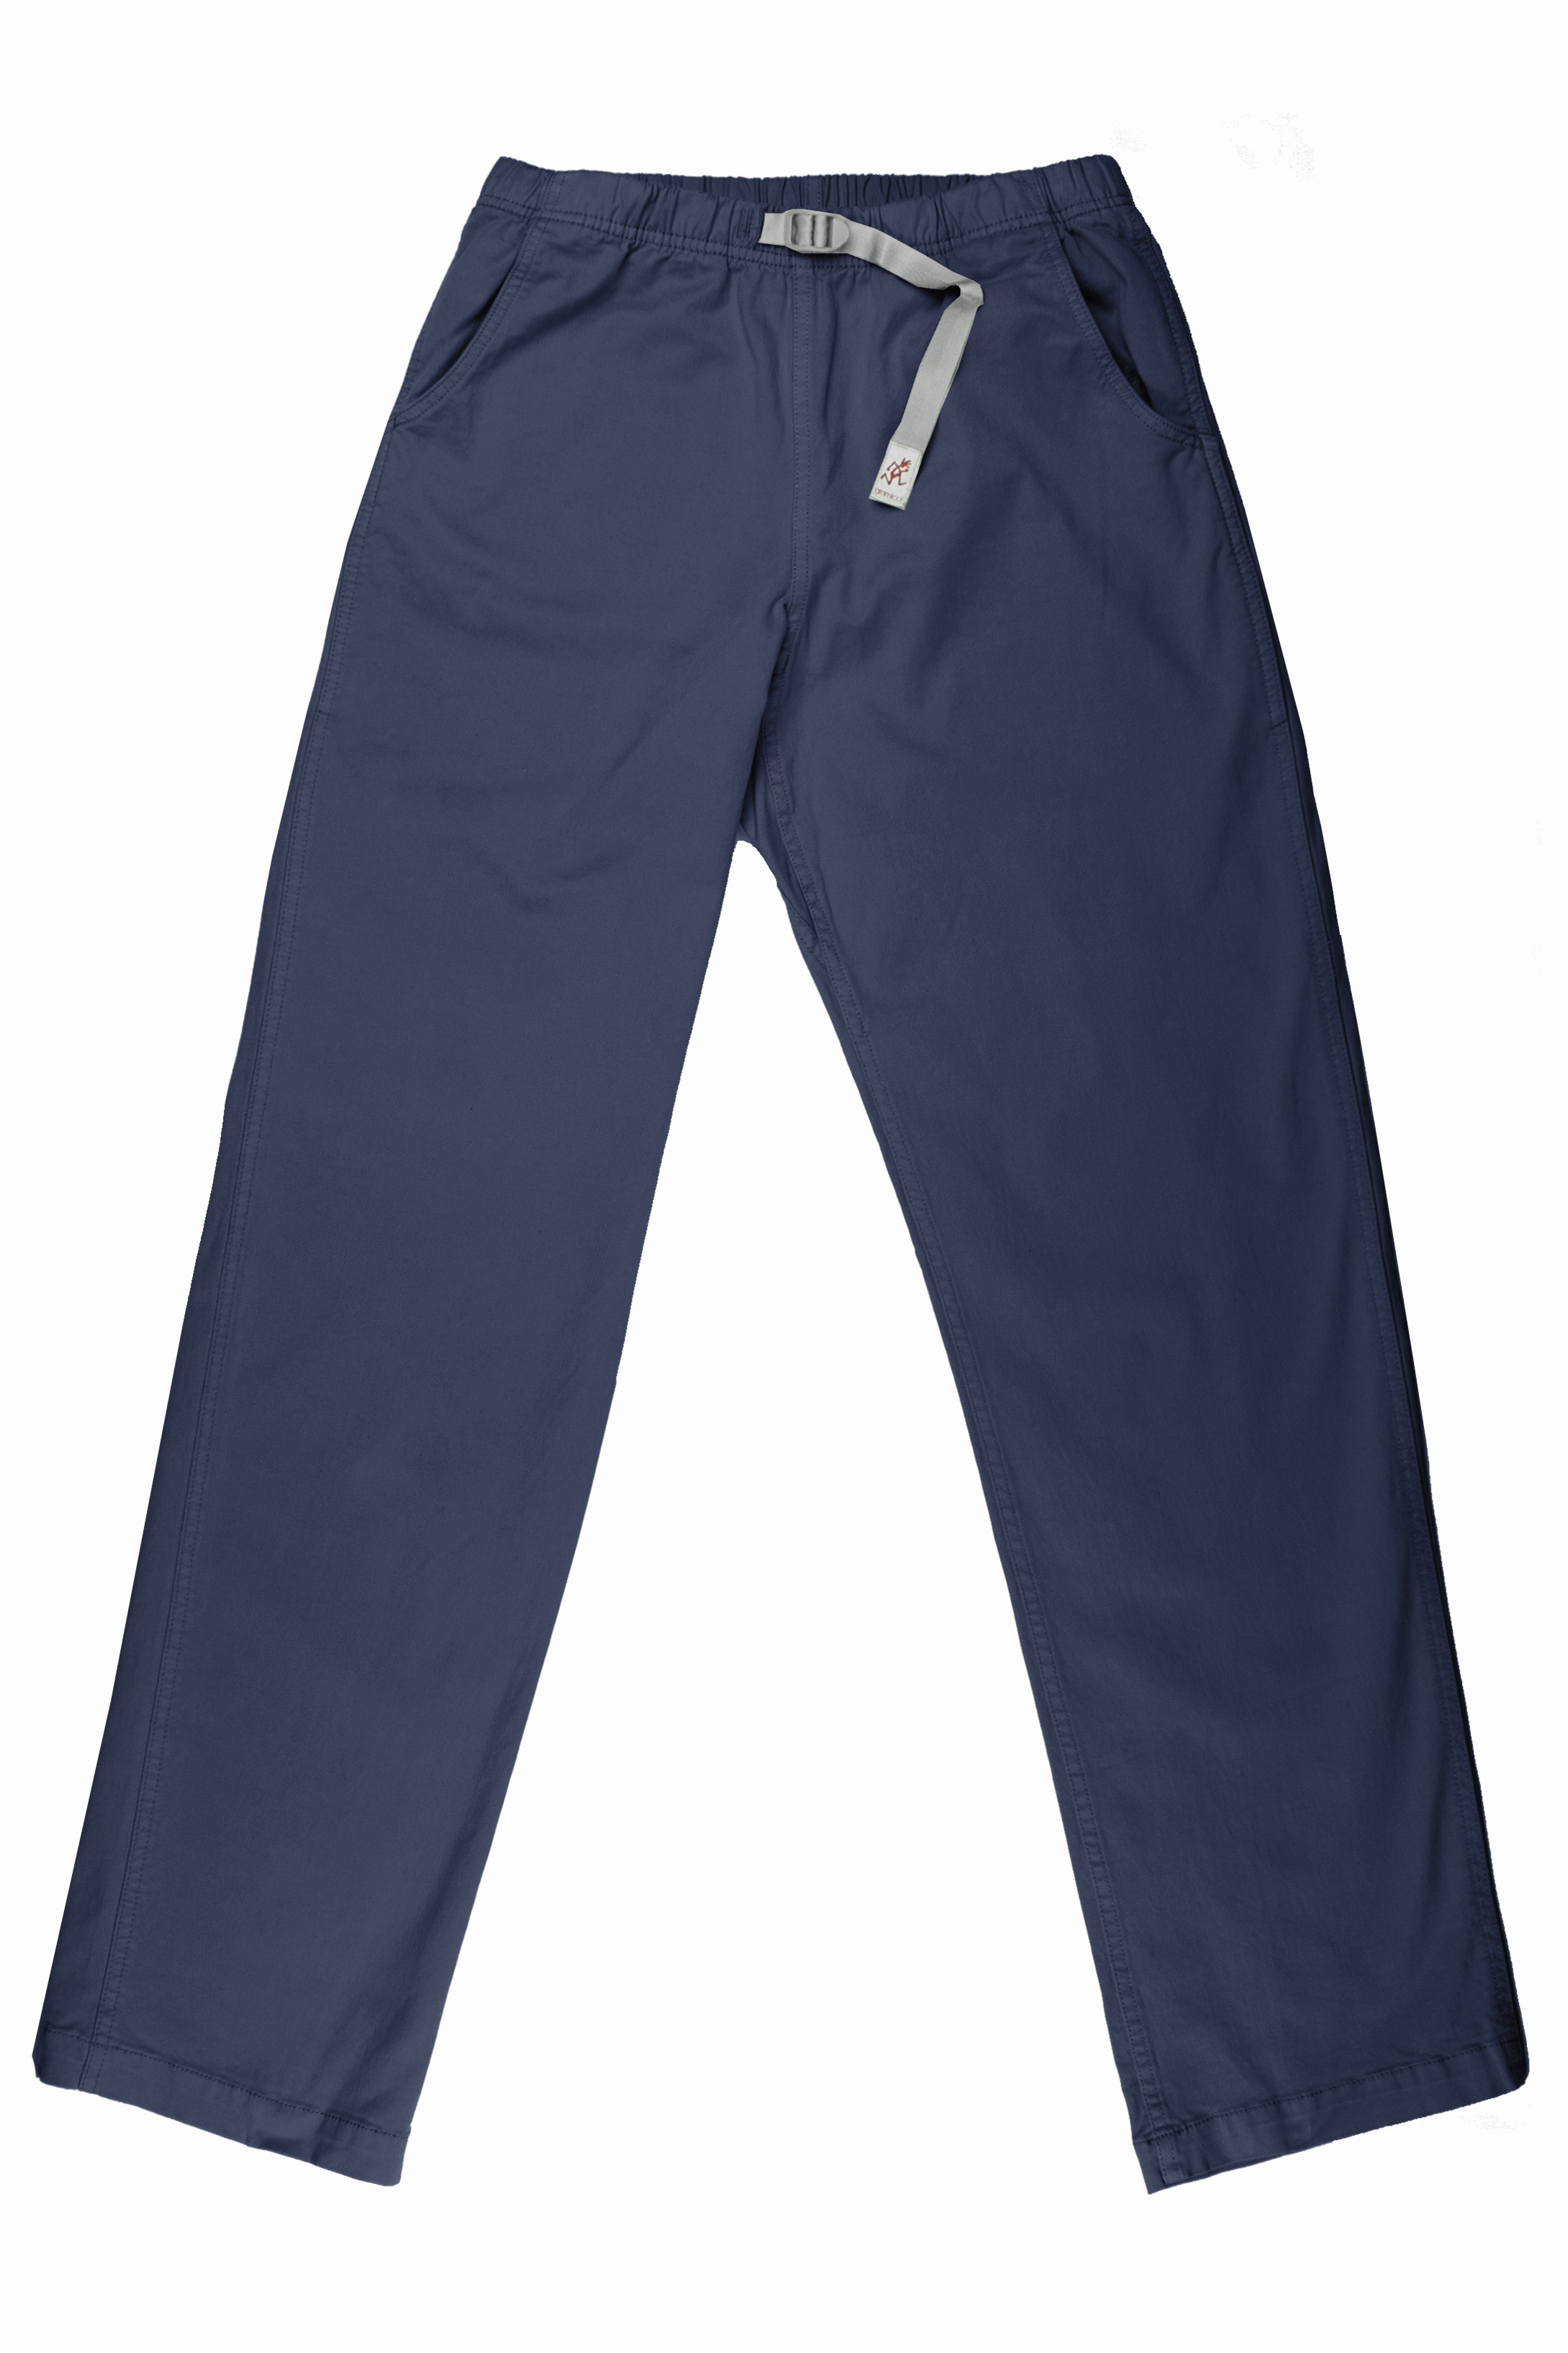 photo: Gramicci Women's Original G Pant hiking pant